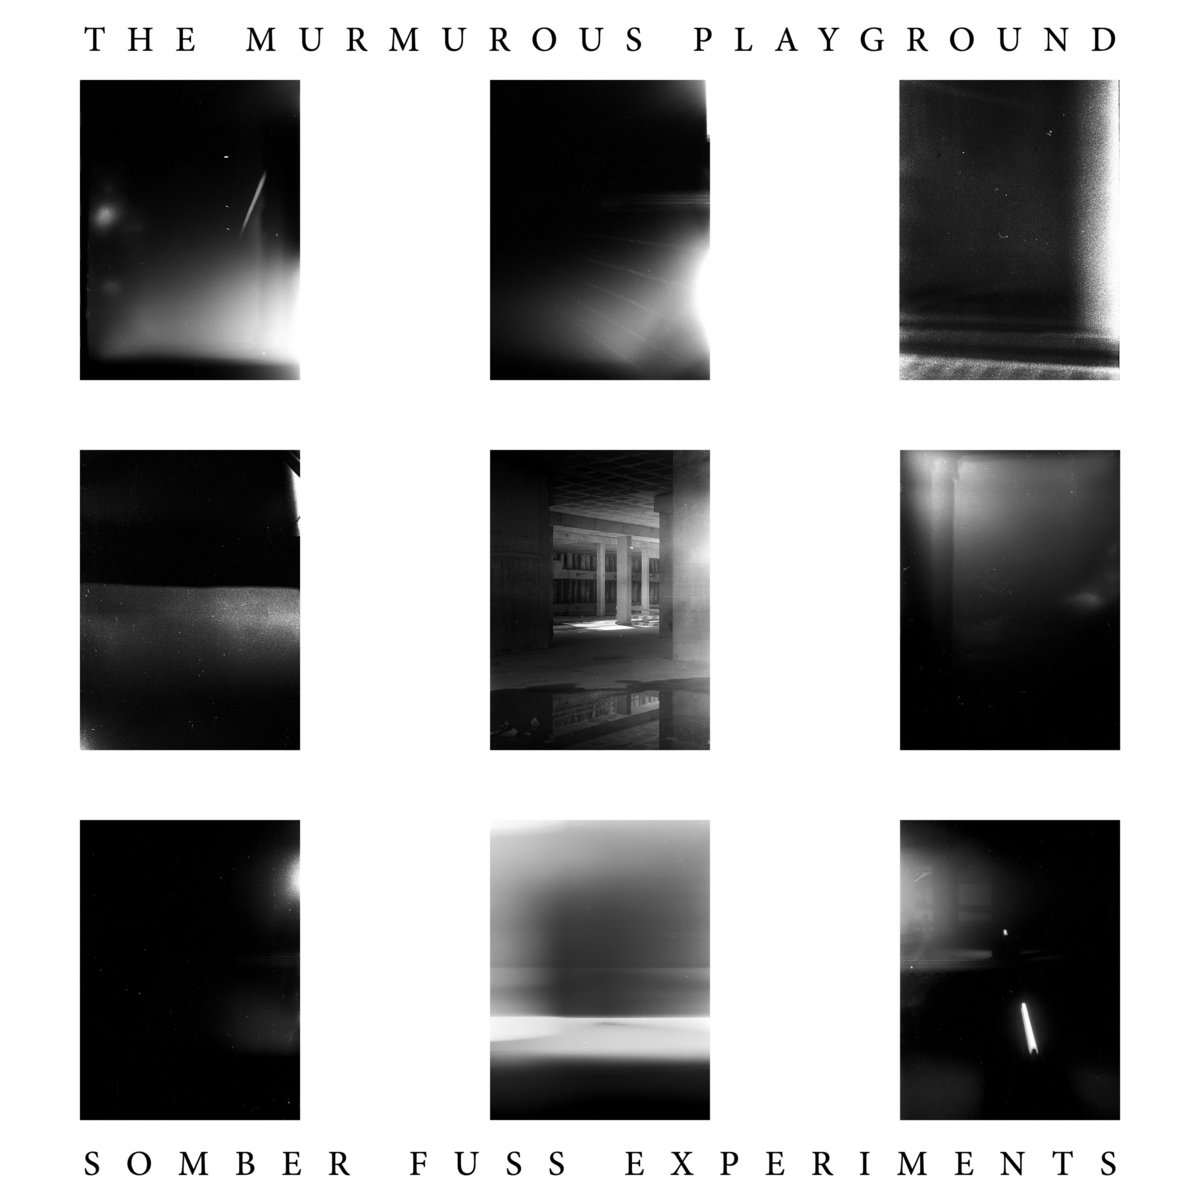 THE MURMUROUS PLAYGROUND – Somber Fuss Experiments